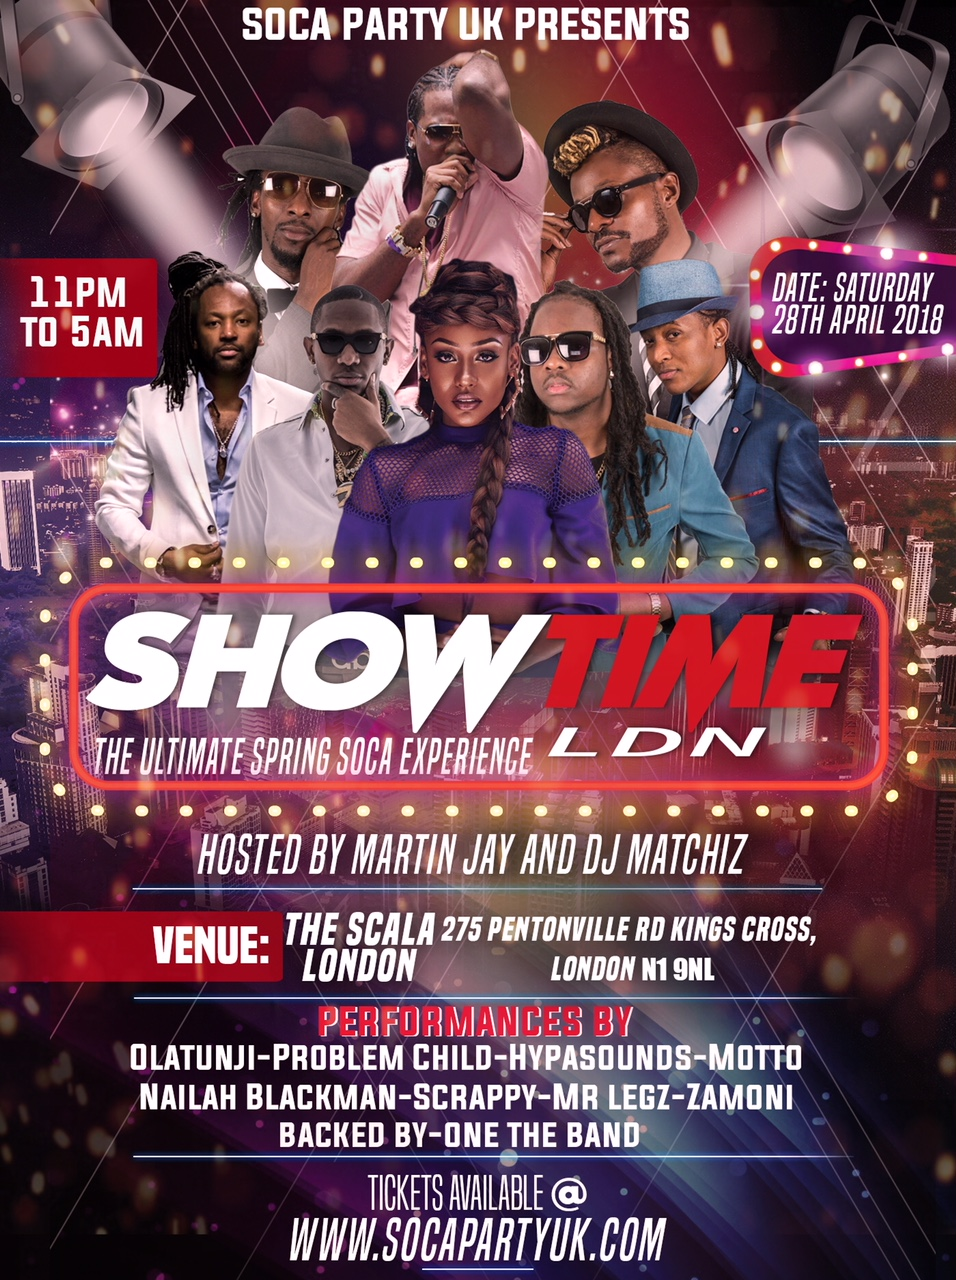 SHOWTIME LDN - The Spring Soca Experience